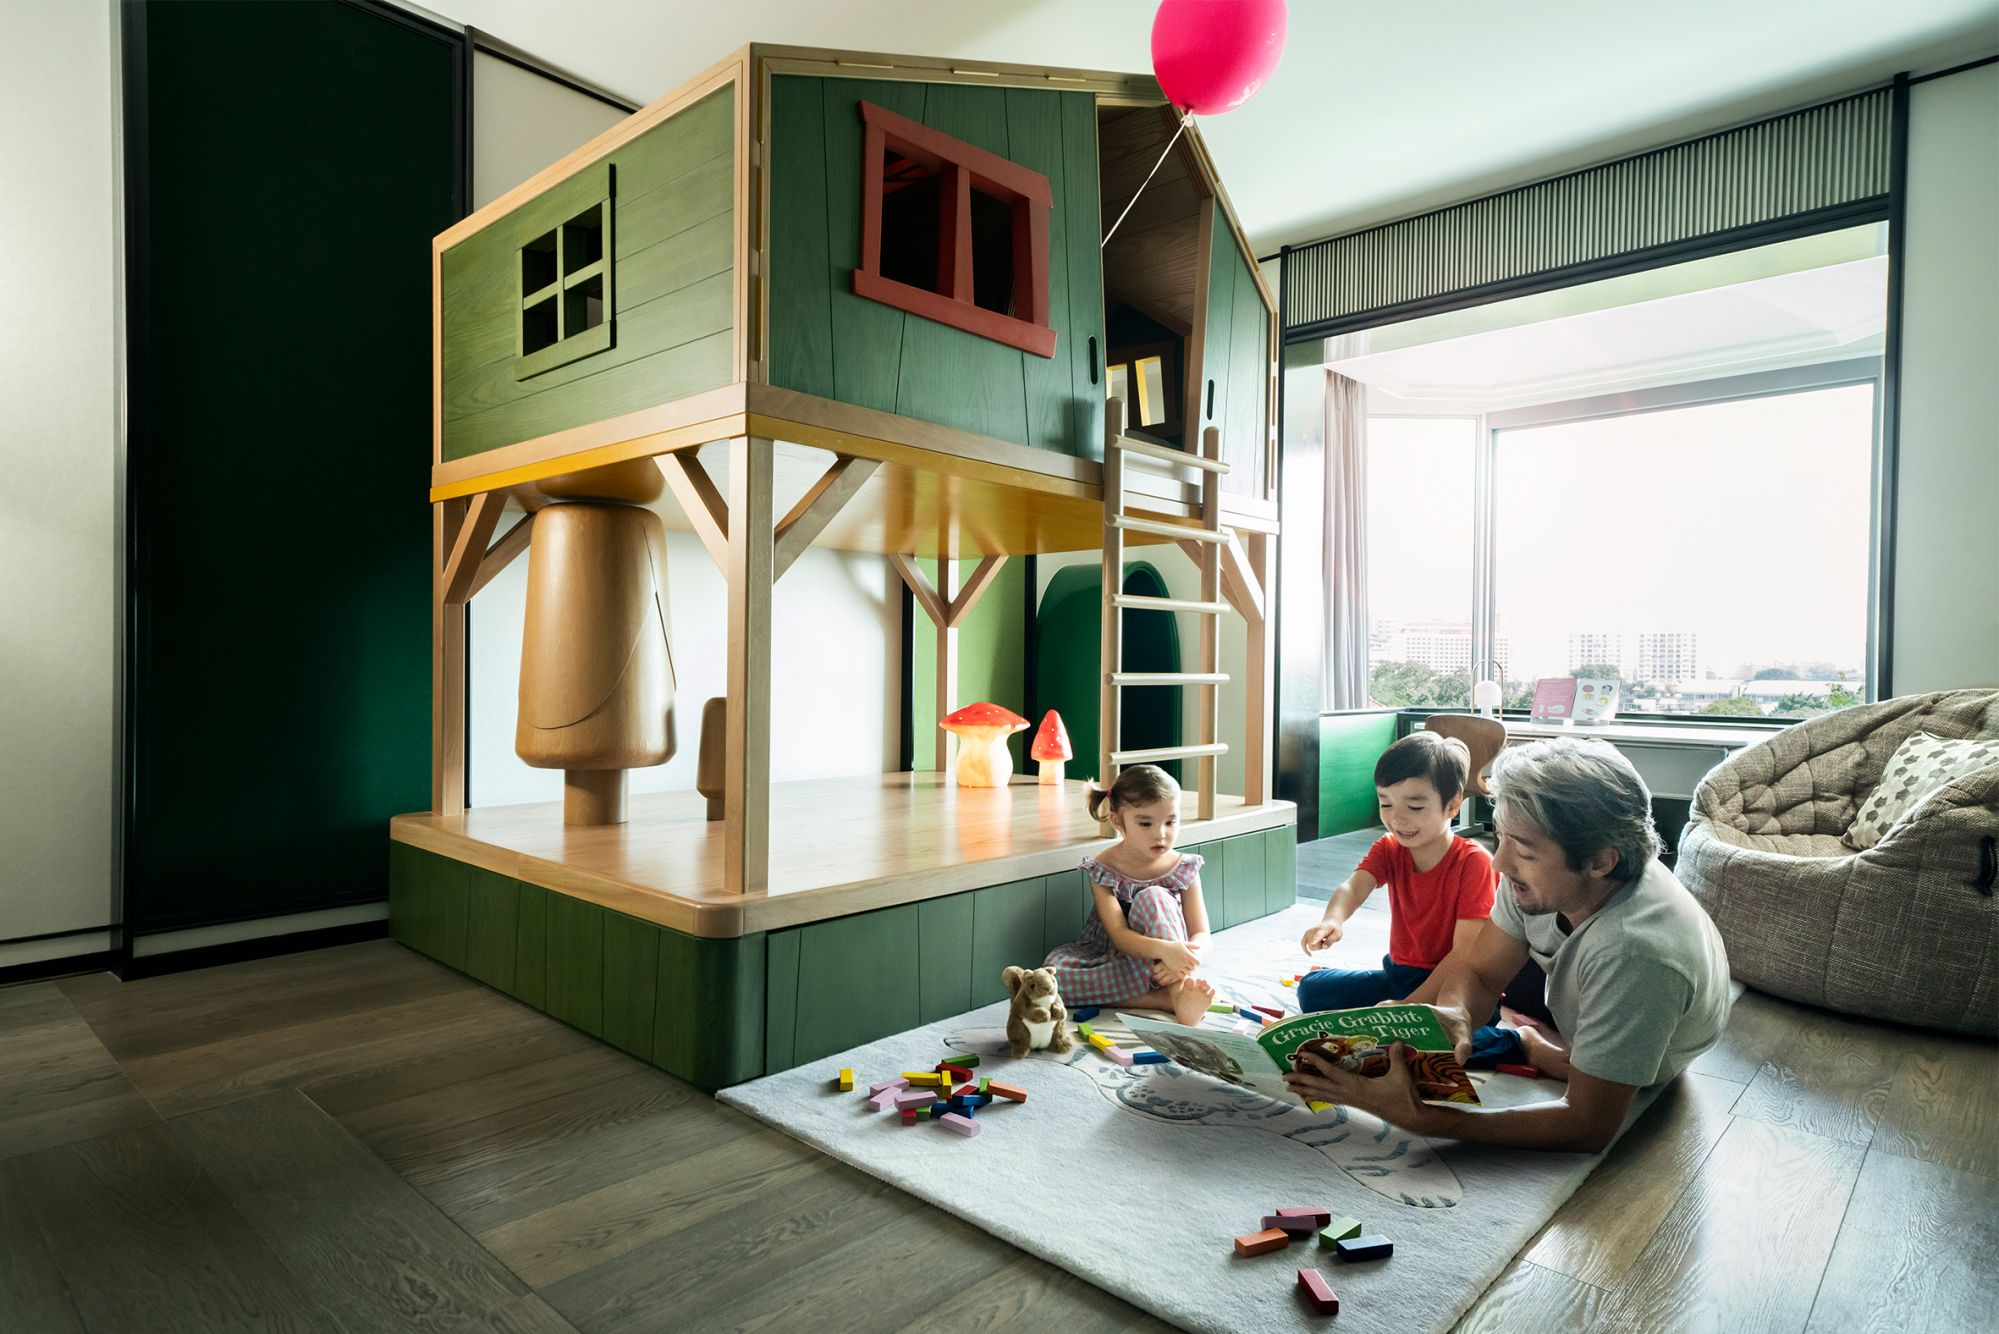 Shangri-La's Themed Family Suites - Treehouse